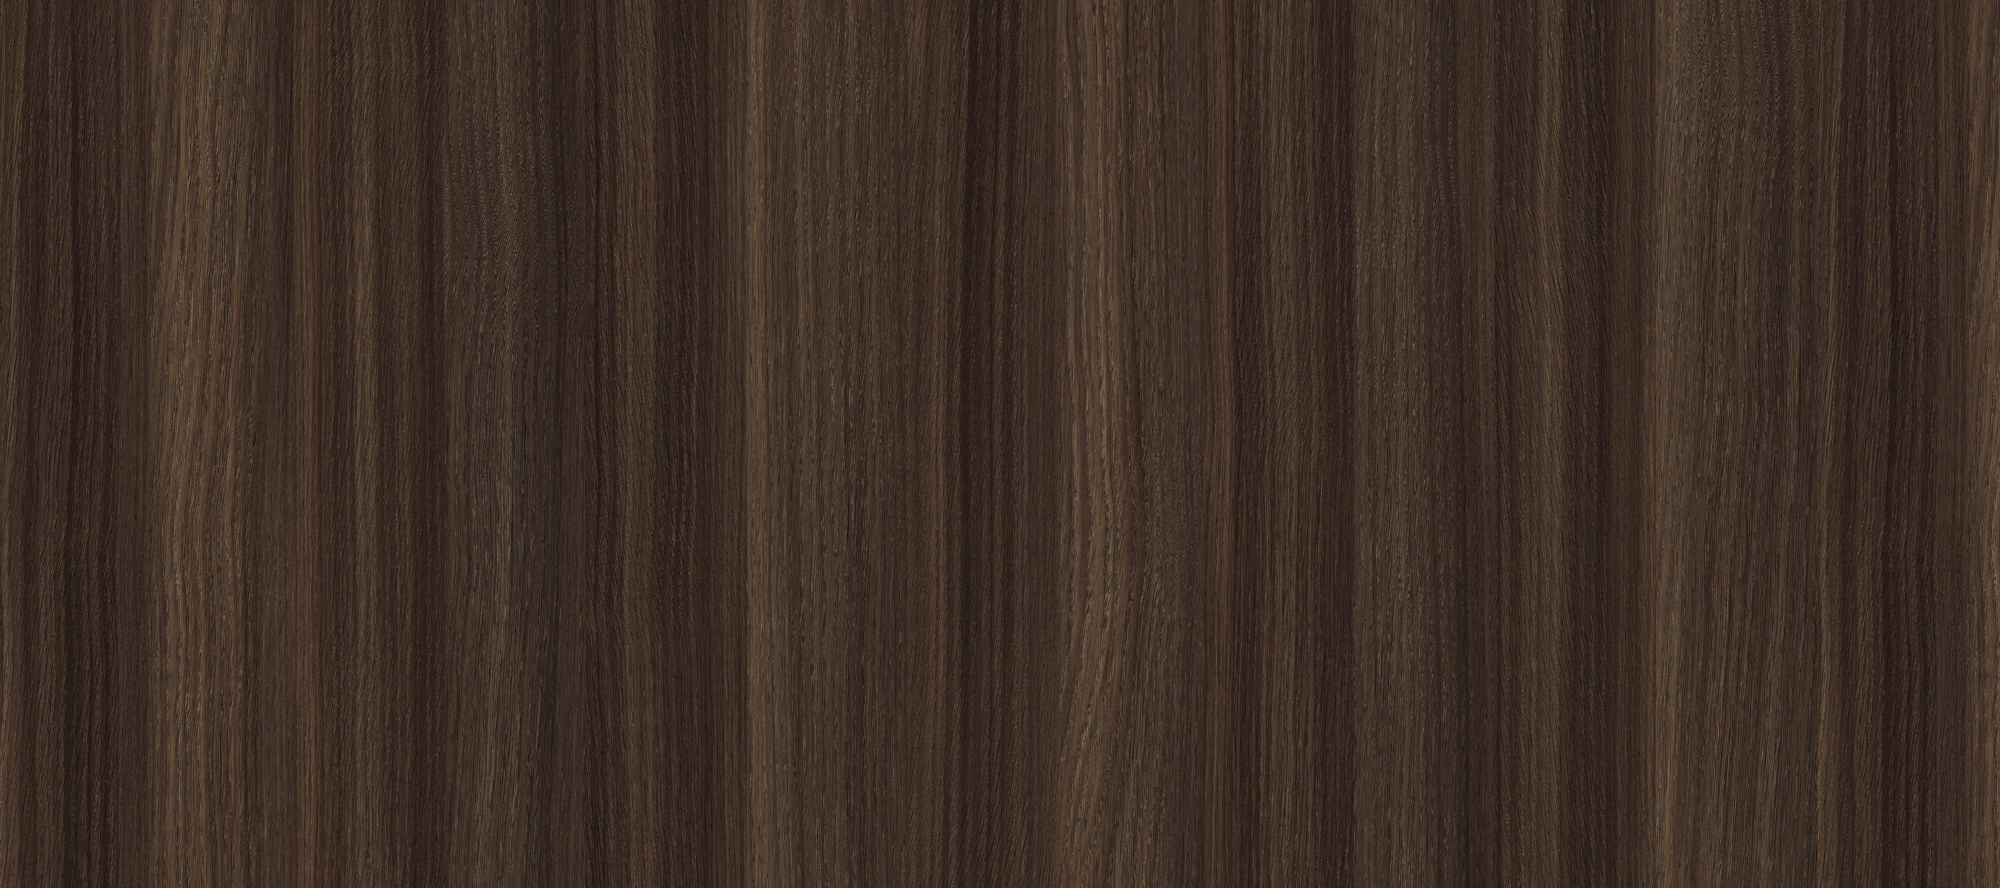 2823 Earth Oak Laminate